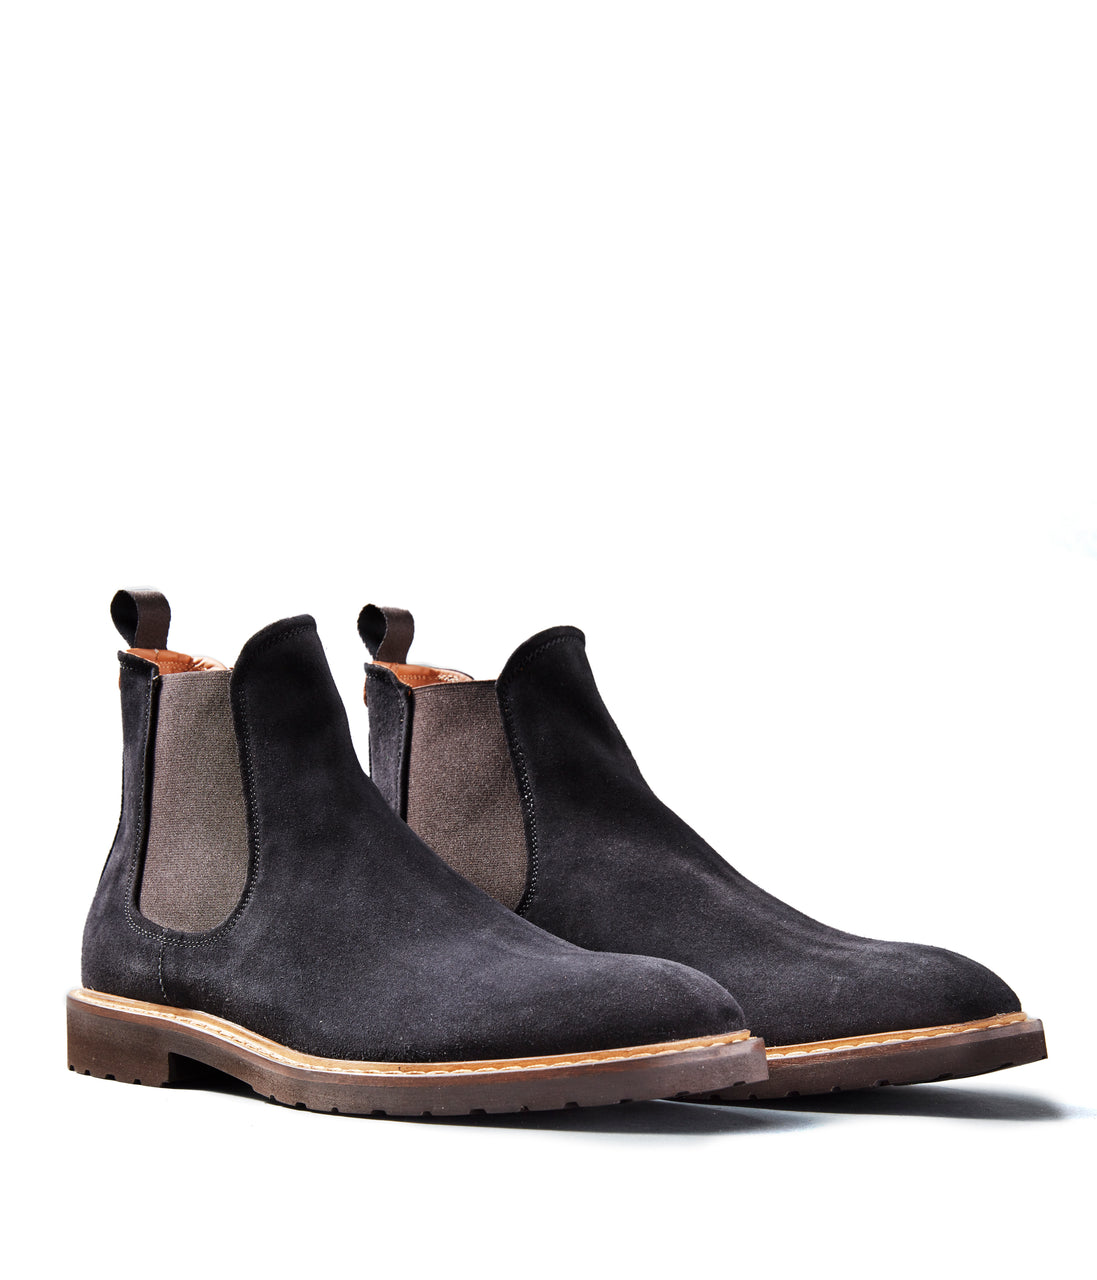 Chelsea Boot - Black - Good Man Brand - Chelsea Boot - Black